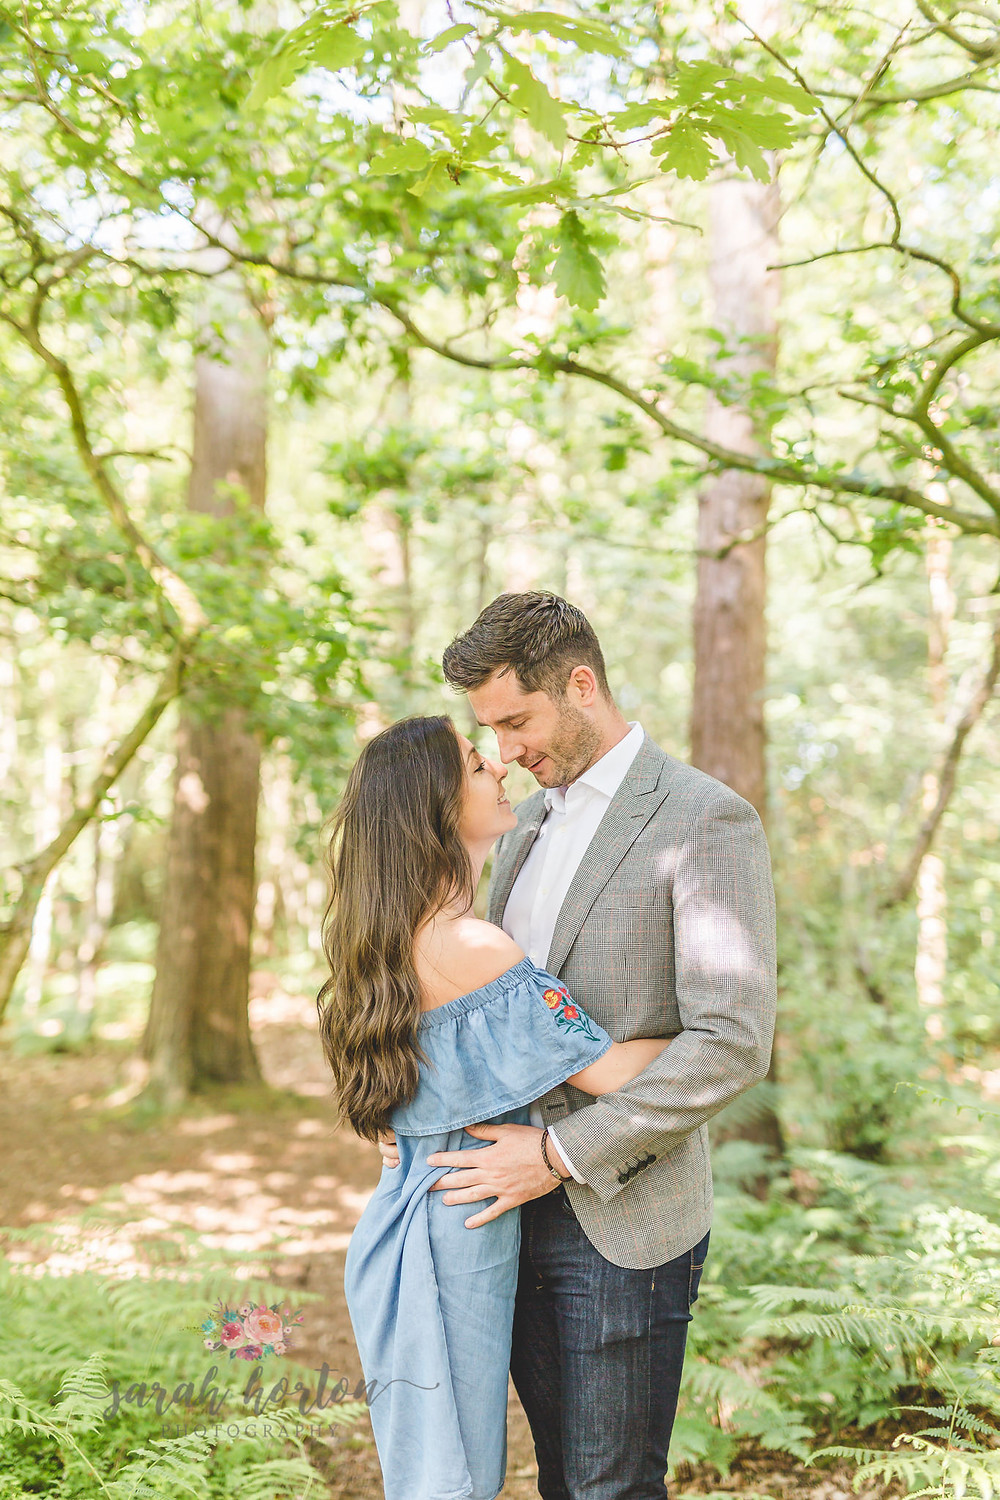 Wedding Photographer Cheshire - Delamere Forest